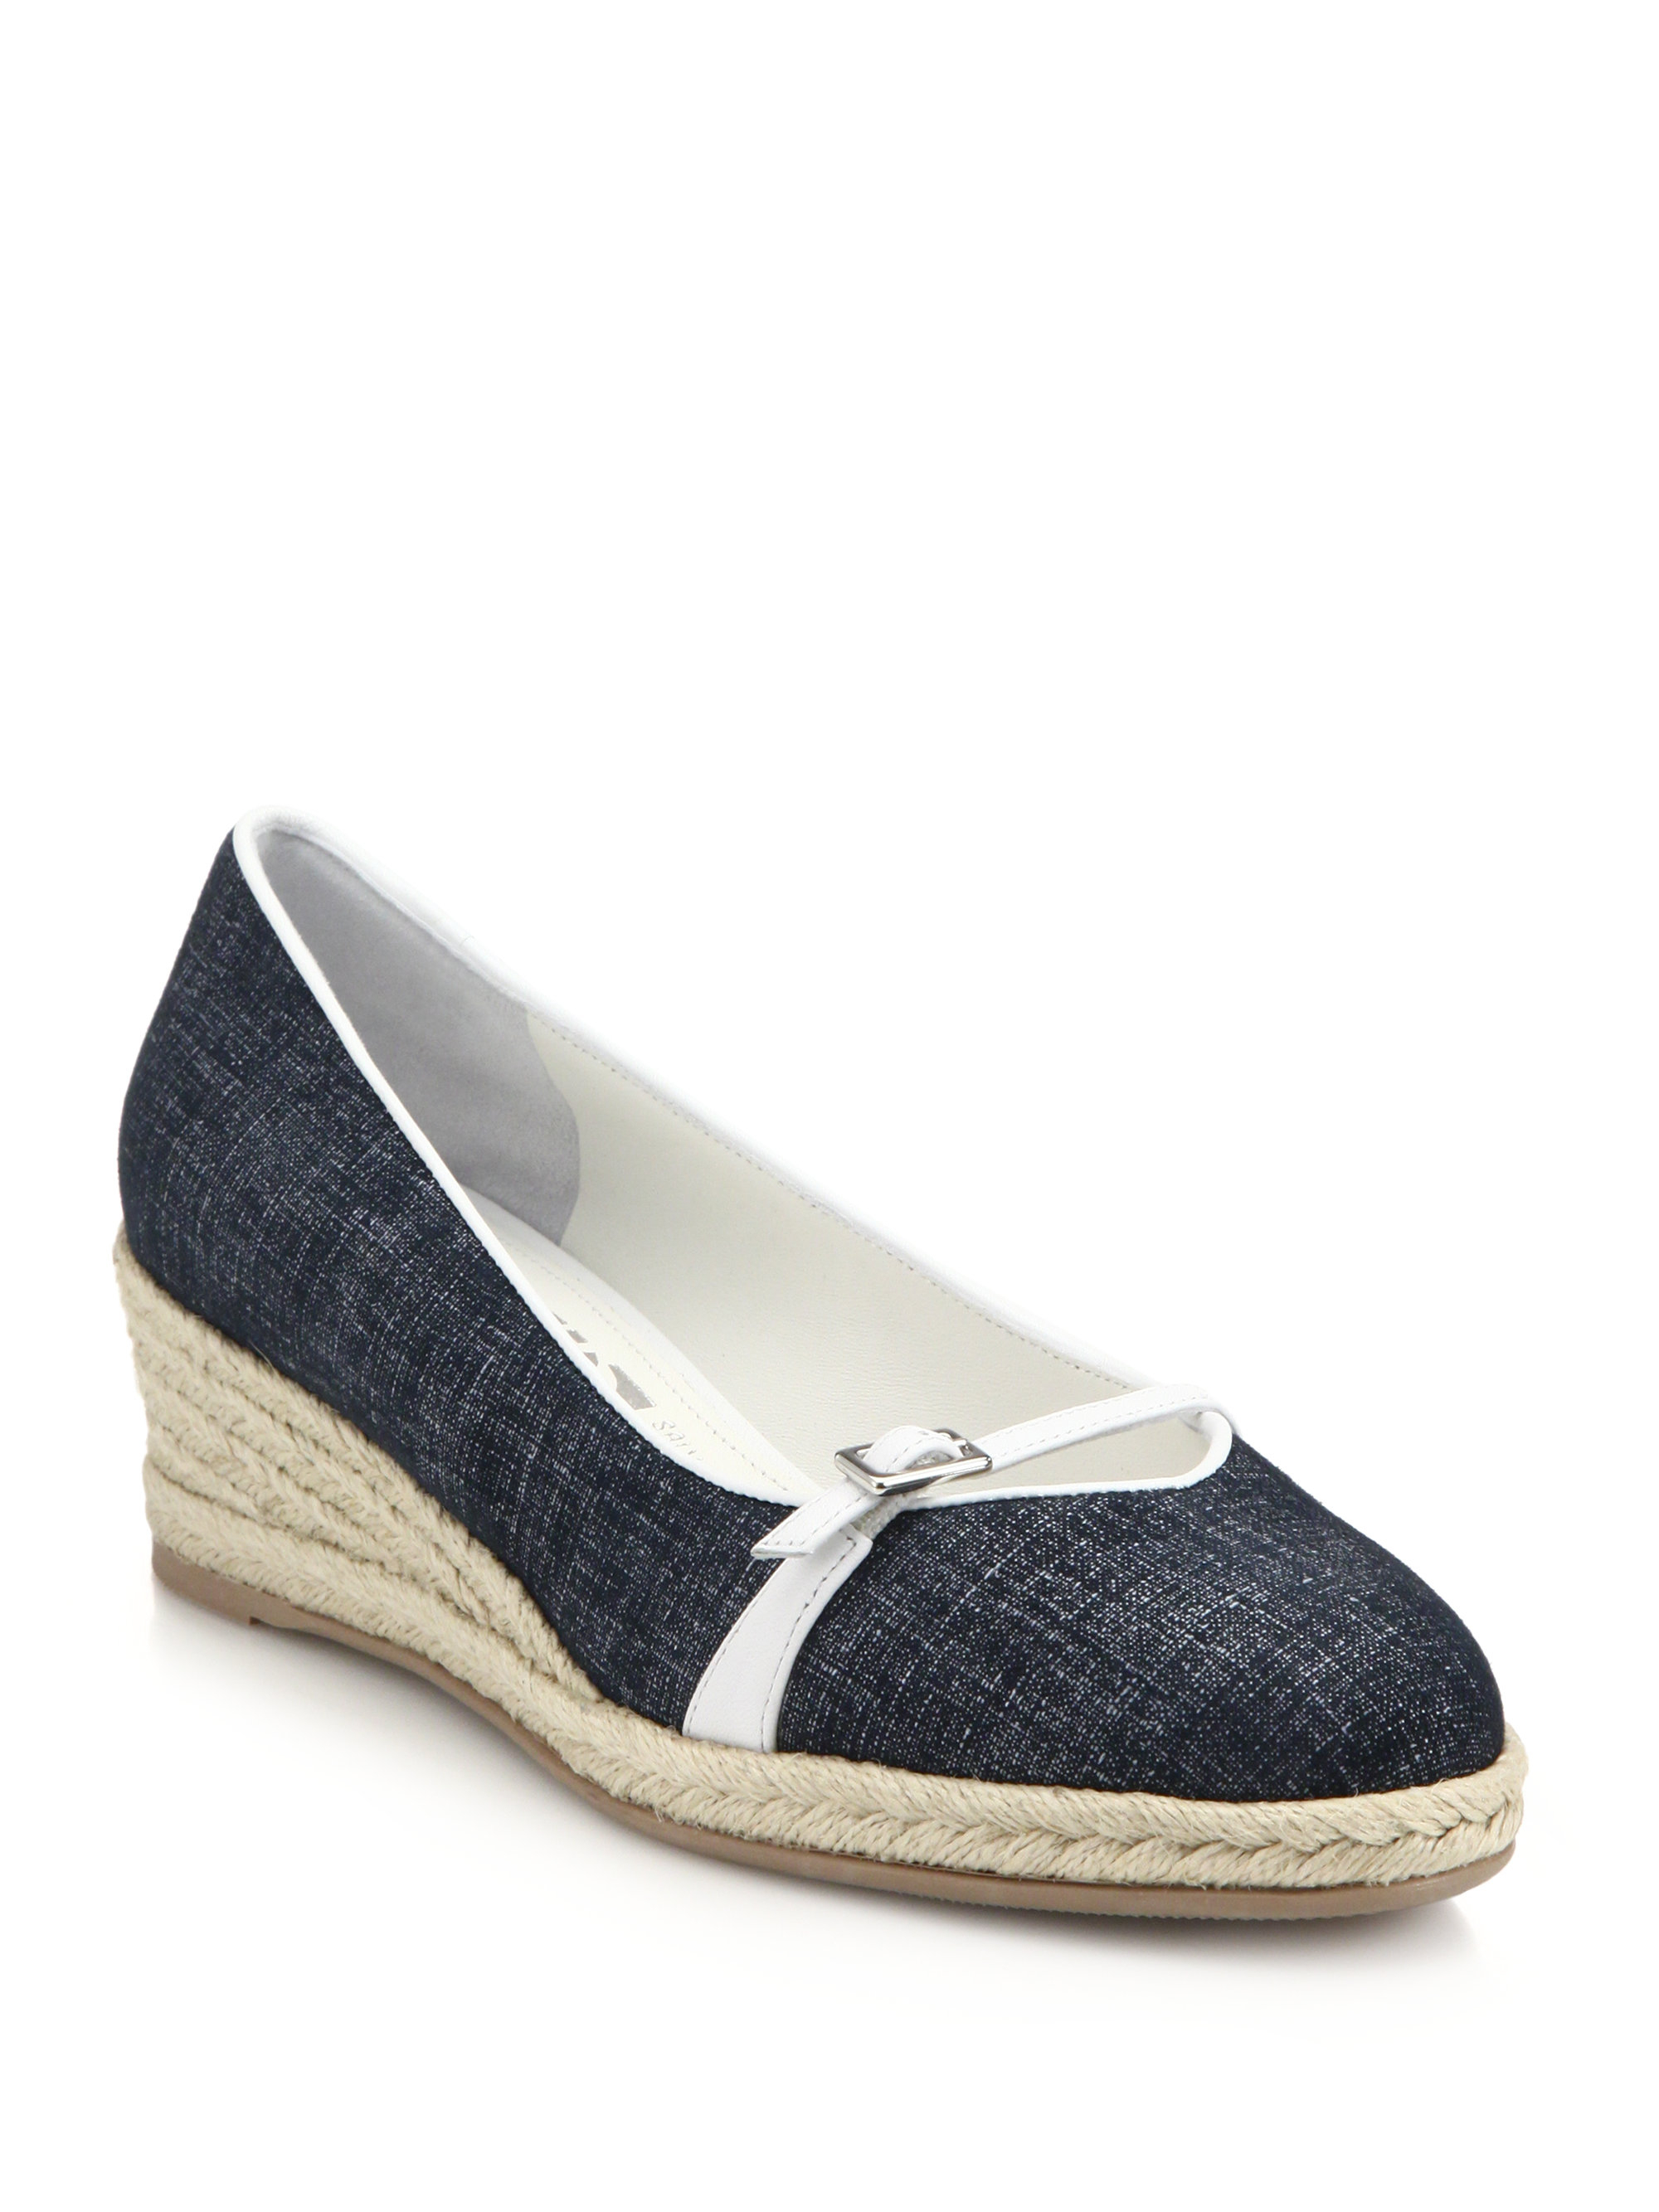 Best Wedge Shoes Brands